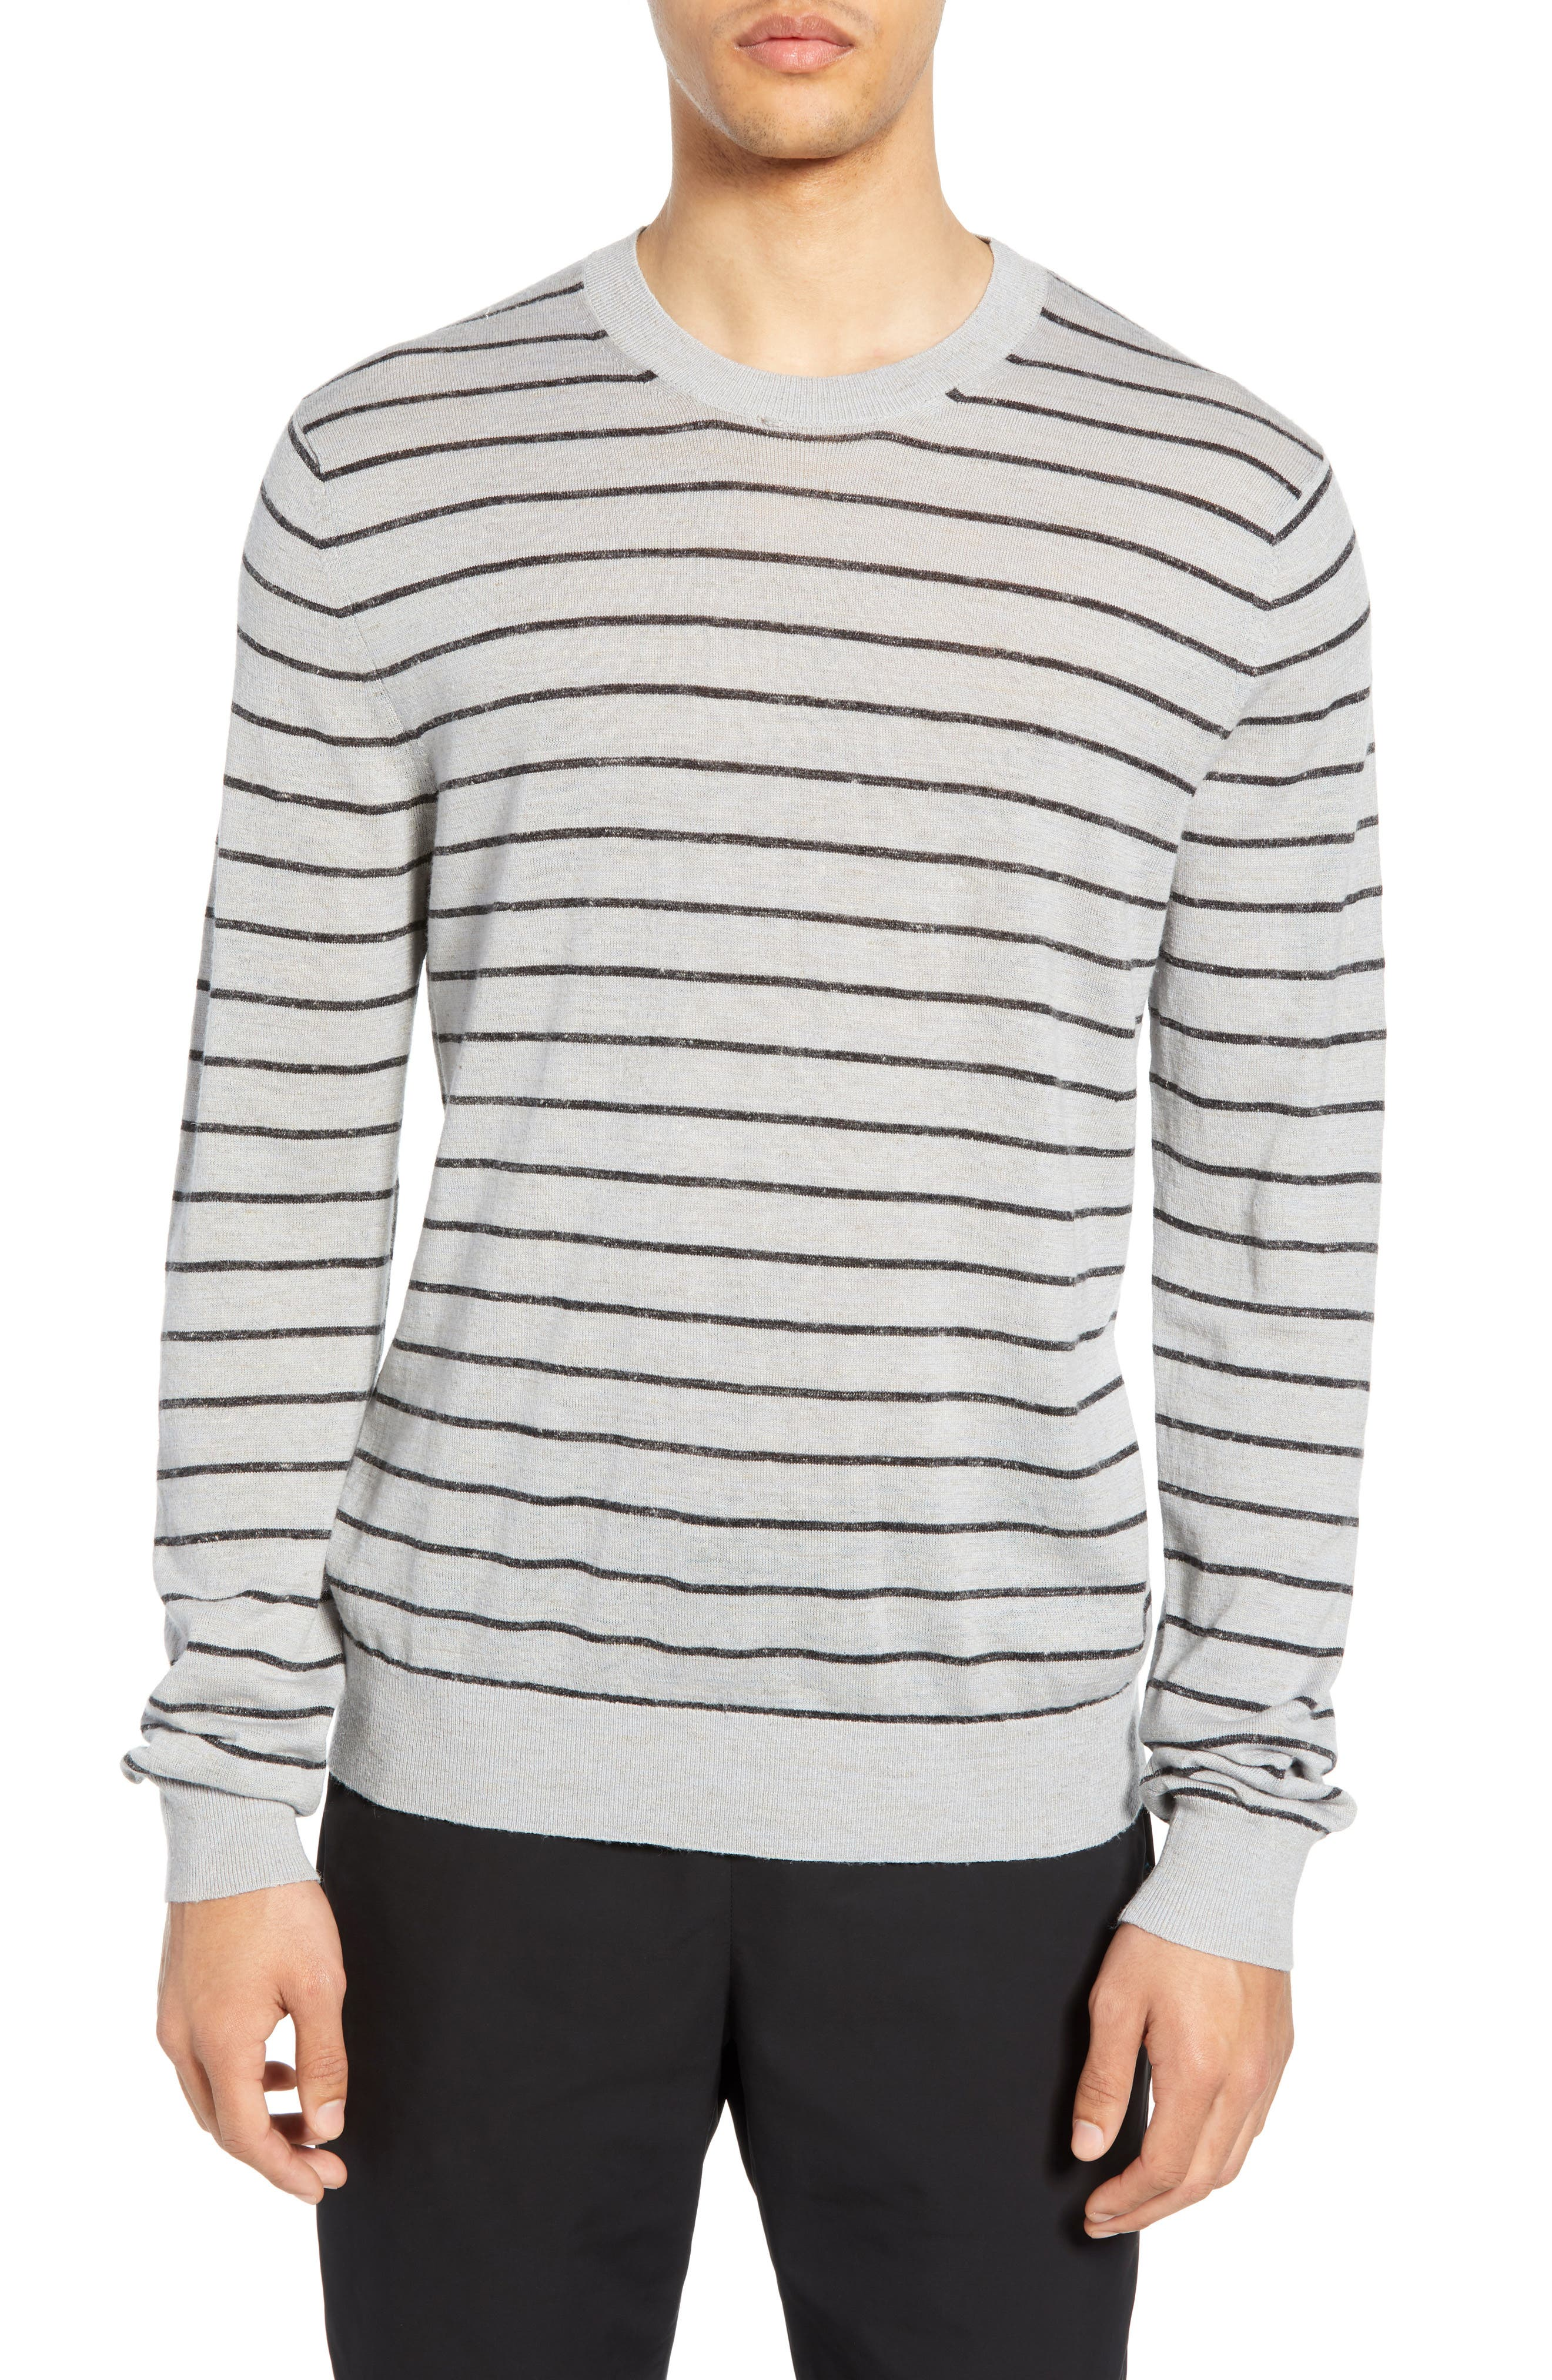 Stripe Crewneck Wool & Linen Sweater, Main, color, HEATHER LIGHT MED GREY/ BLACK